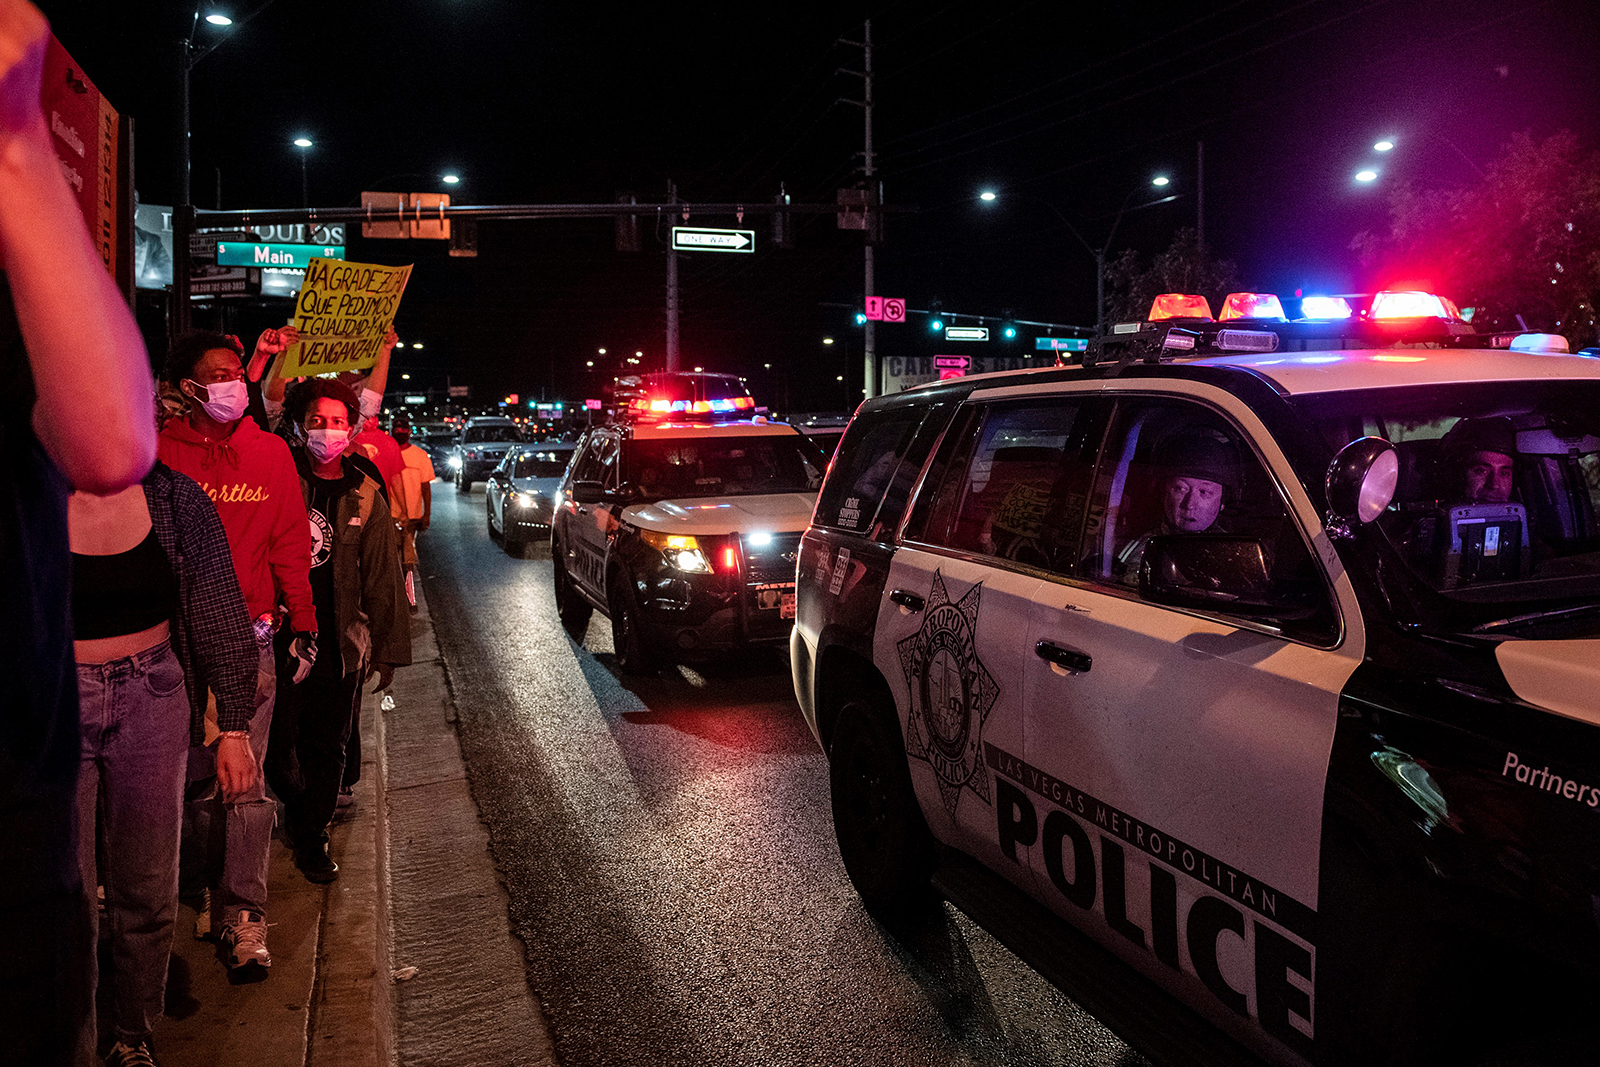 A police officer looks outside the car window as people march, on June 1, in downtown Las Vegas.